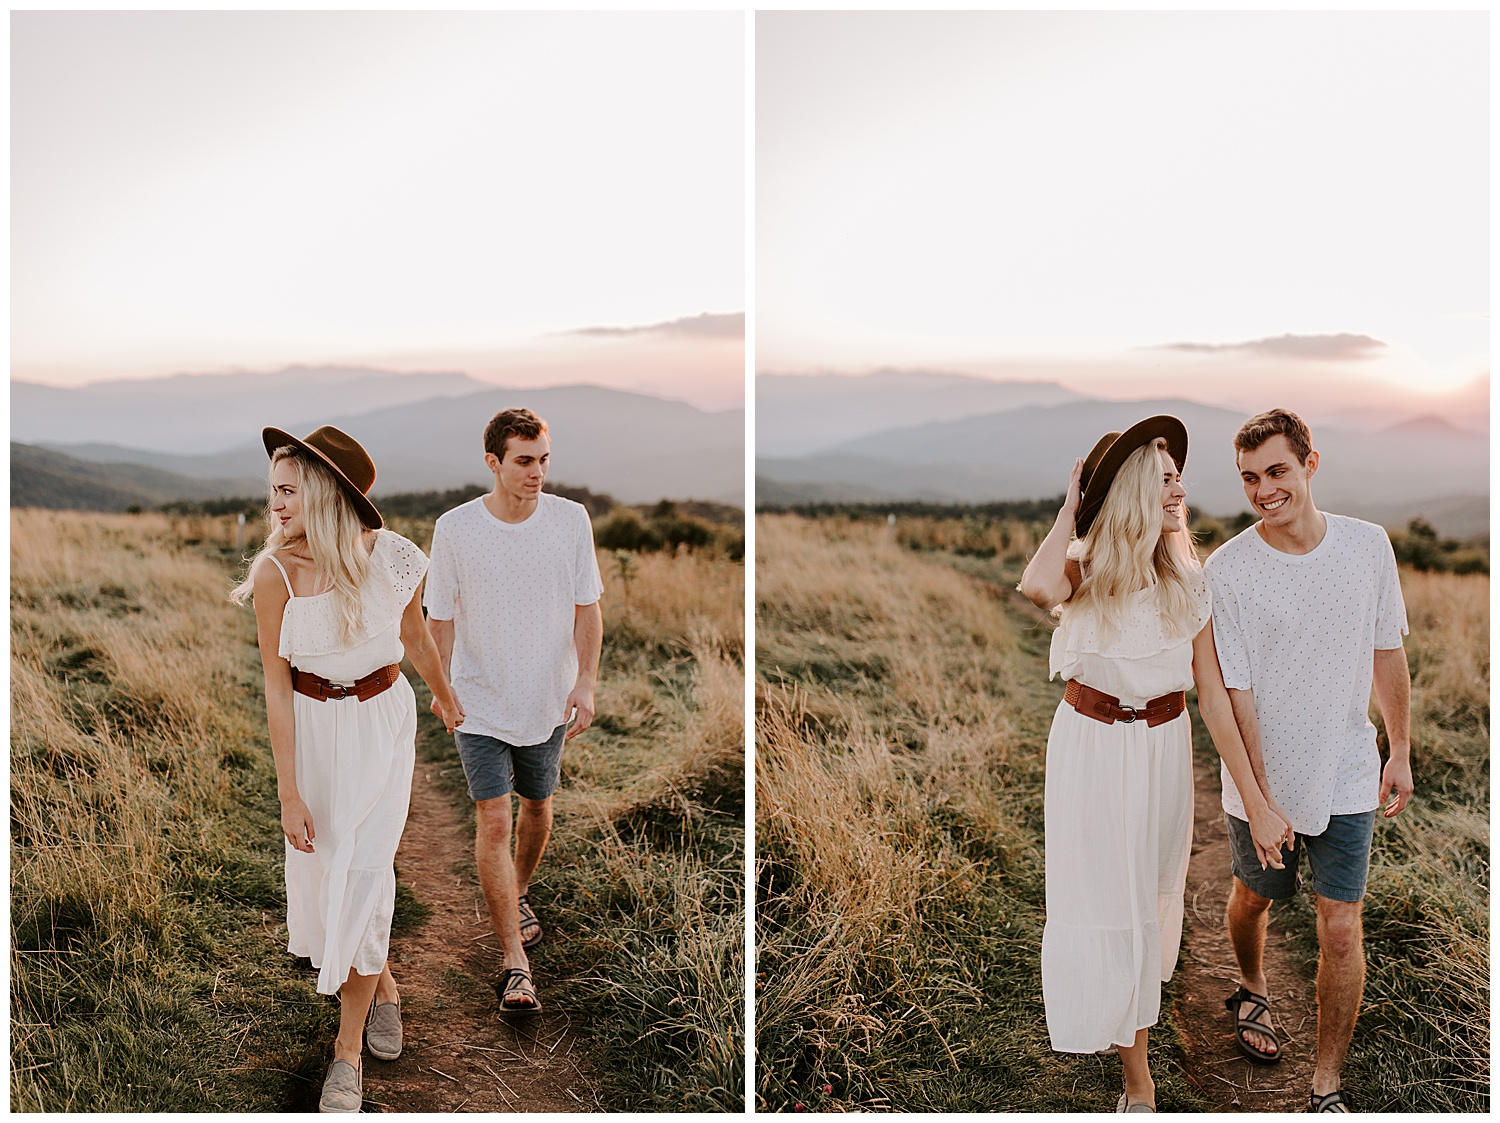 HANNAH_NICK_MAXPATCH_ENGAGEMENT2019-09-05_0037.jpg